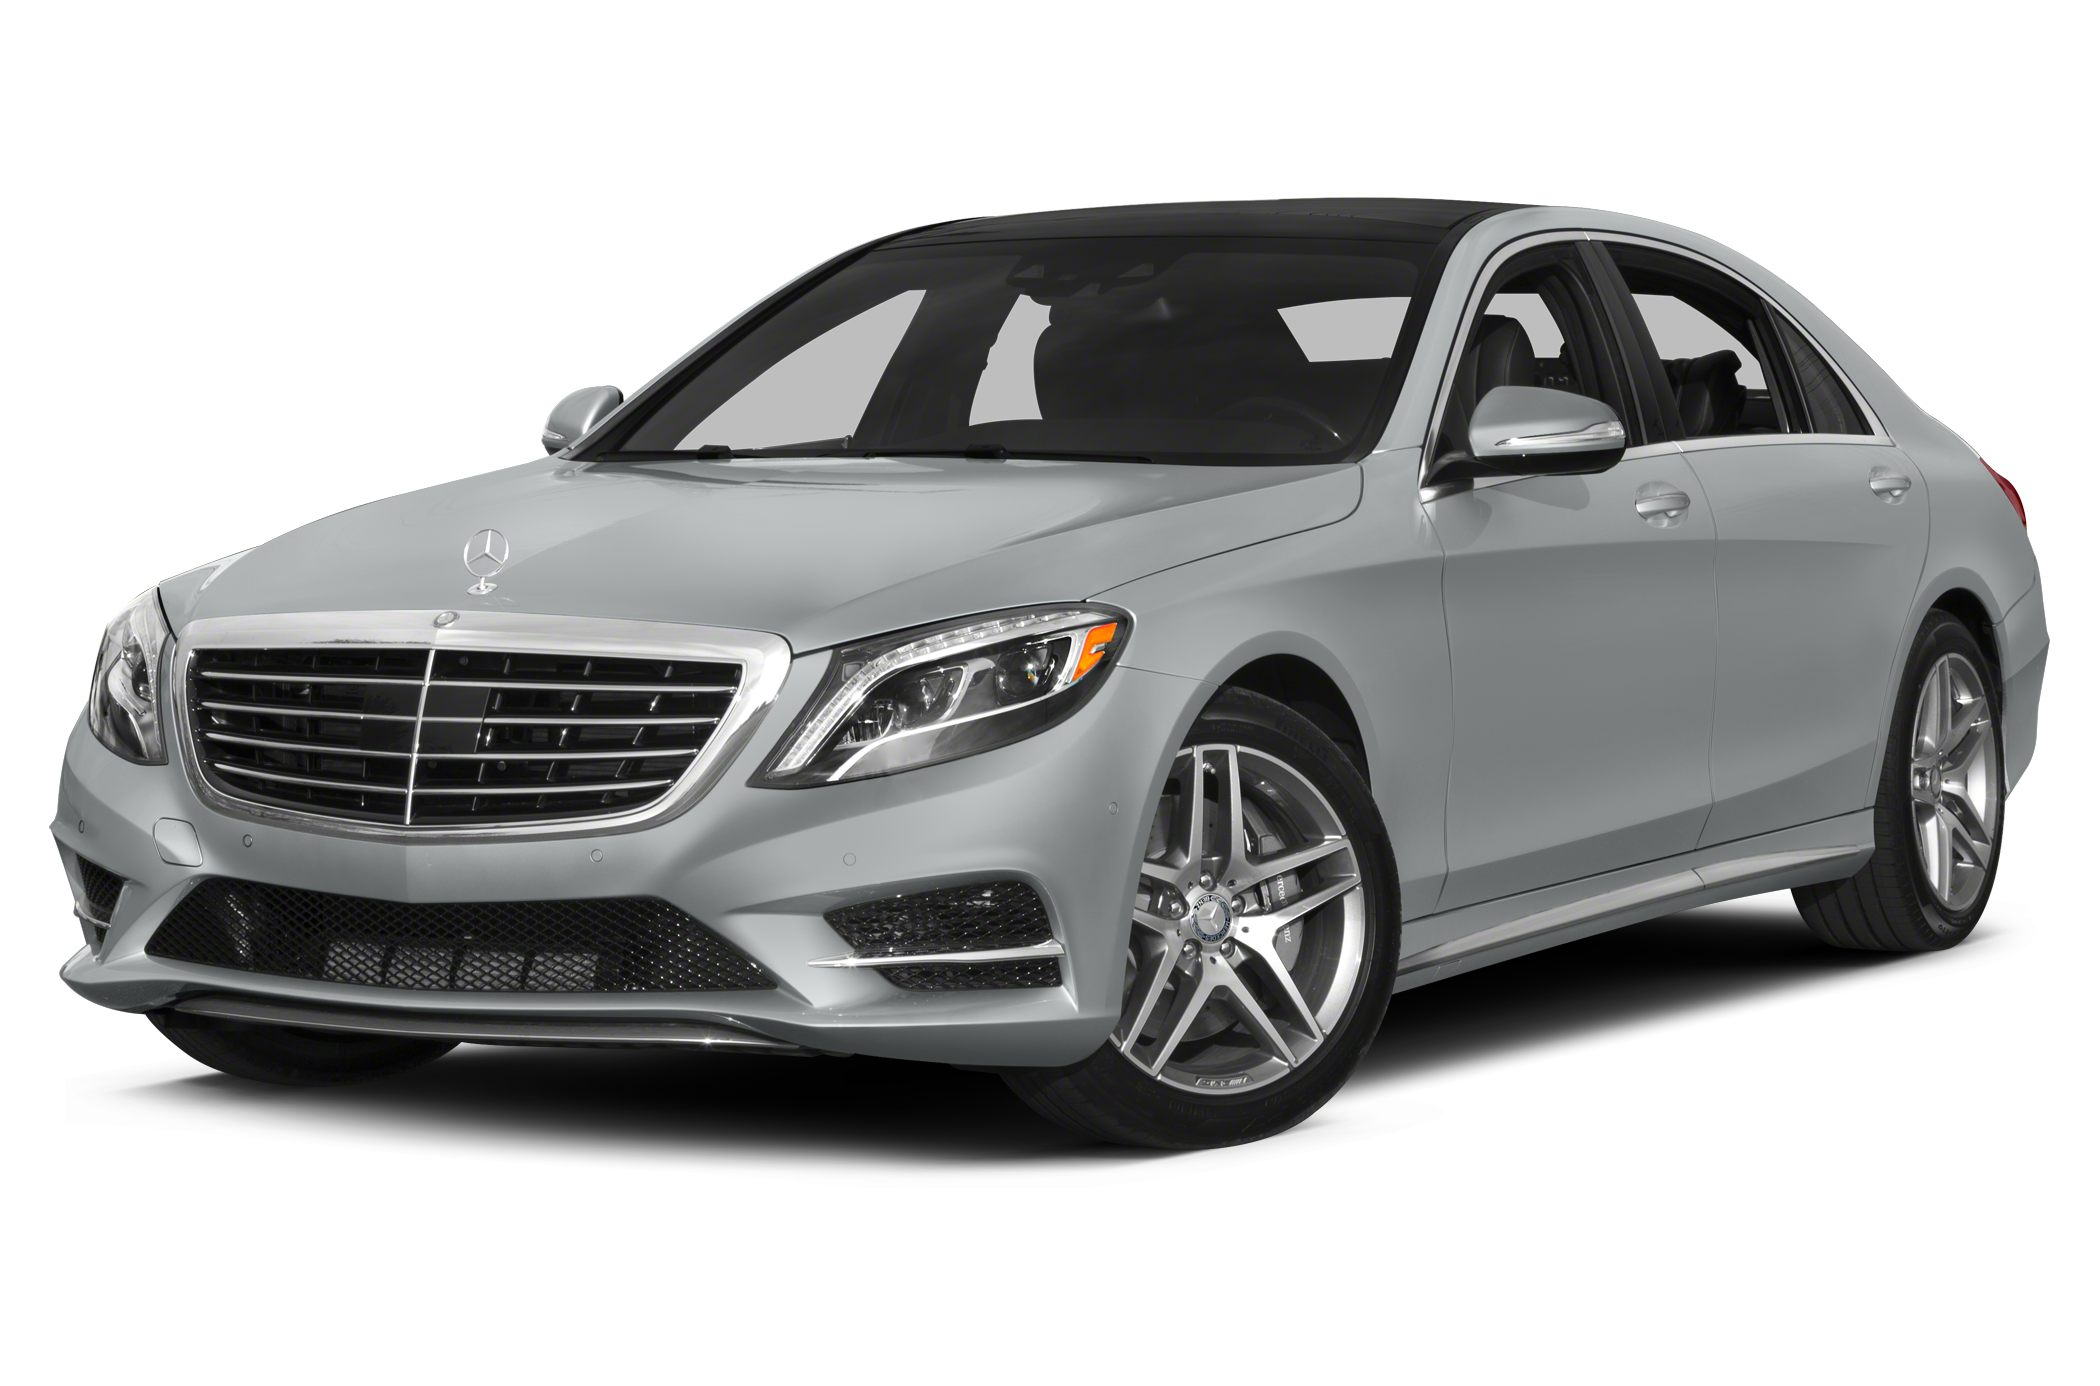 2015 Mercedes-Benz S-Class S550 4MATIC Sedan for sale in Alexandria for $113,620 with 0 miles